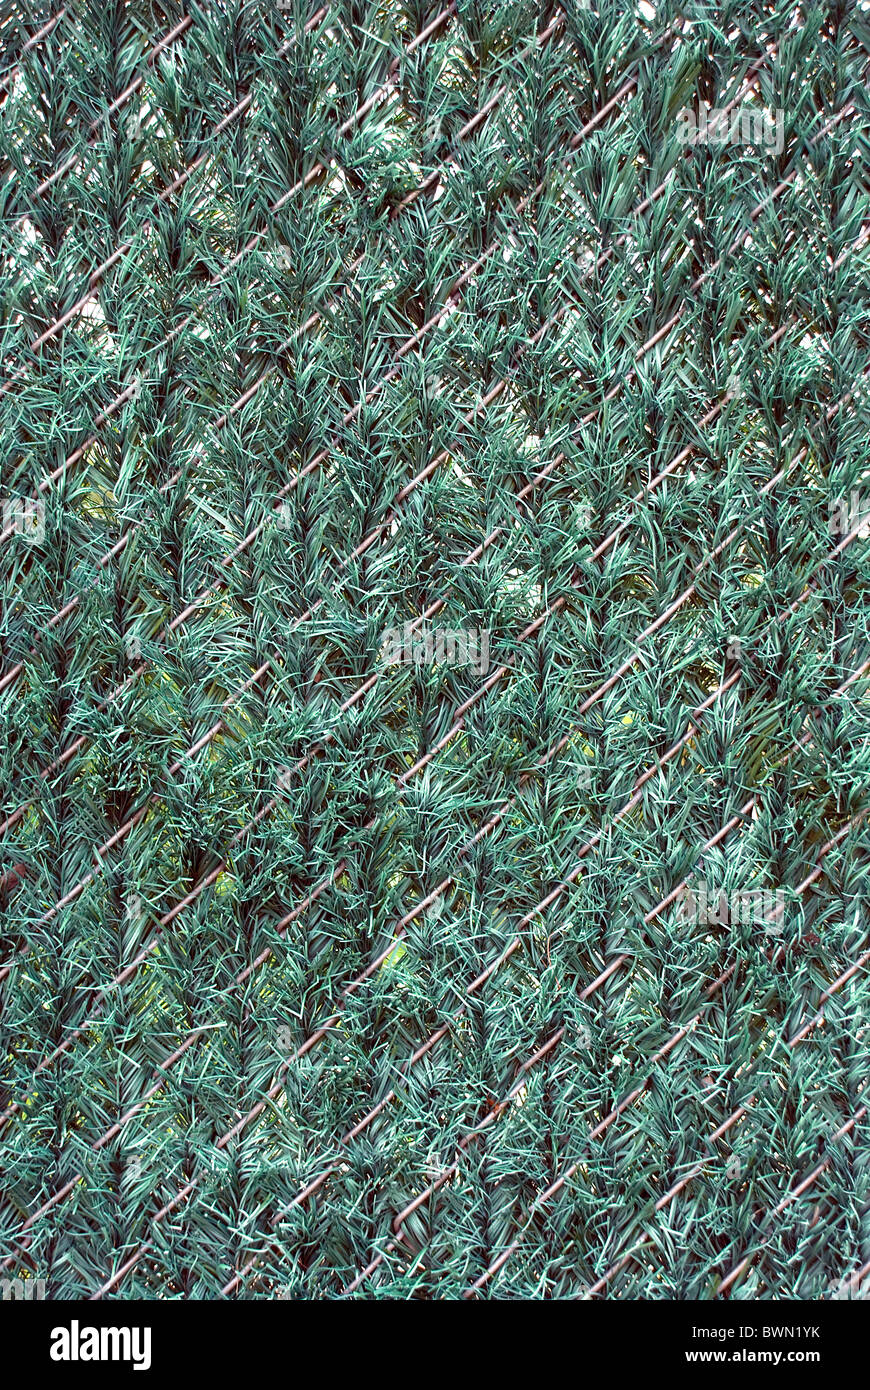 Artificial Hedge Fence Material In Chain Link Fence To